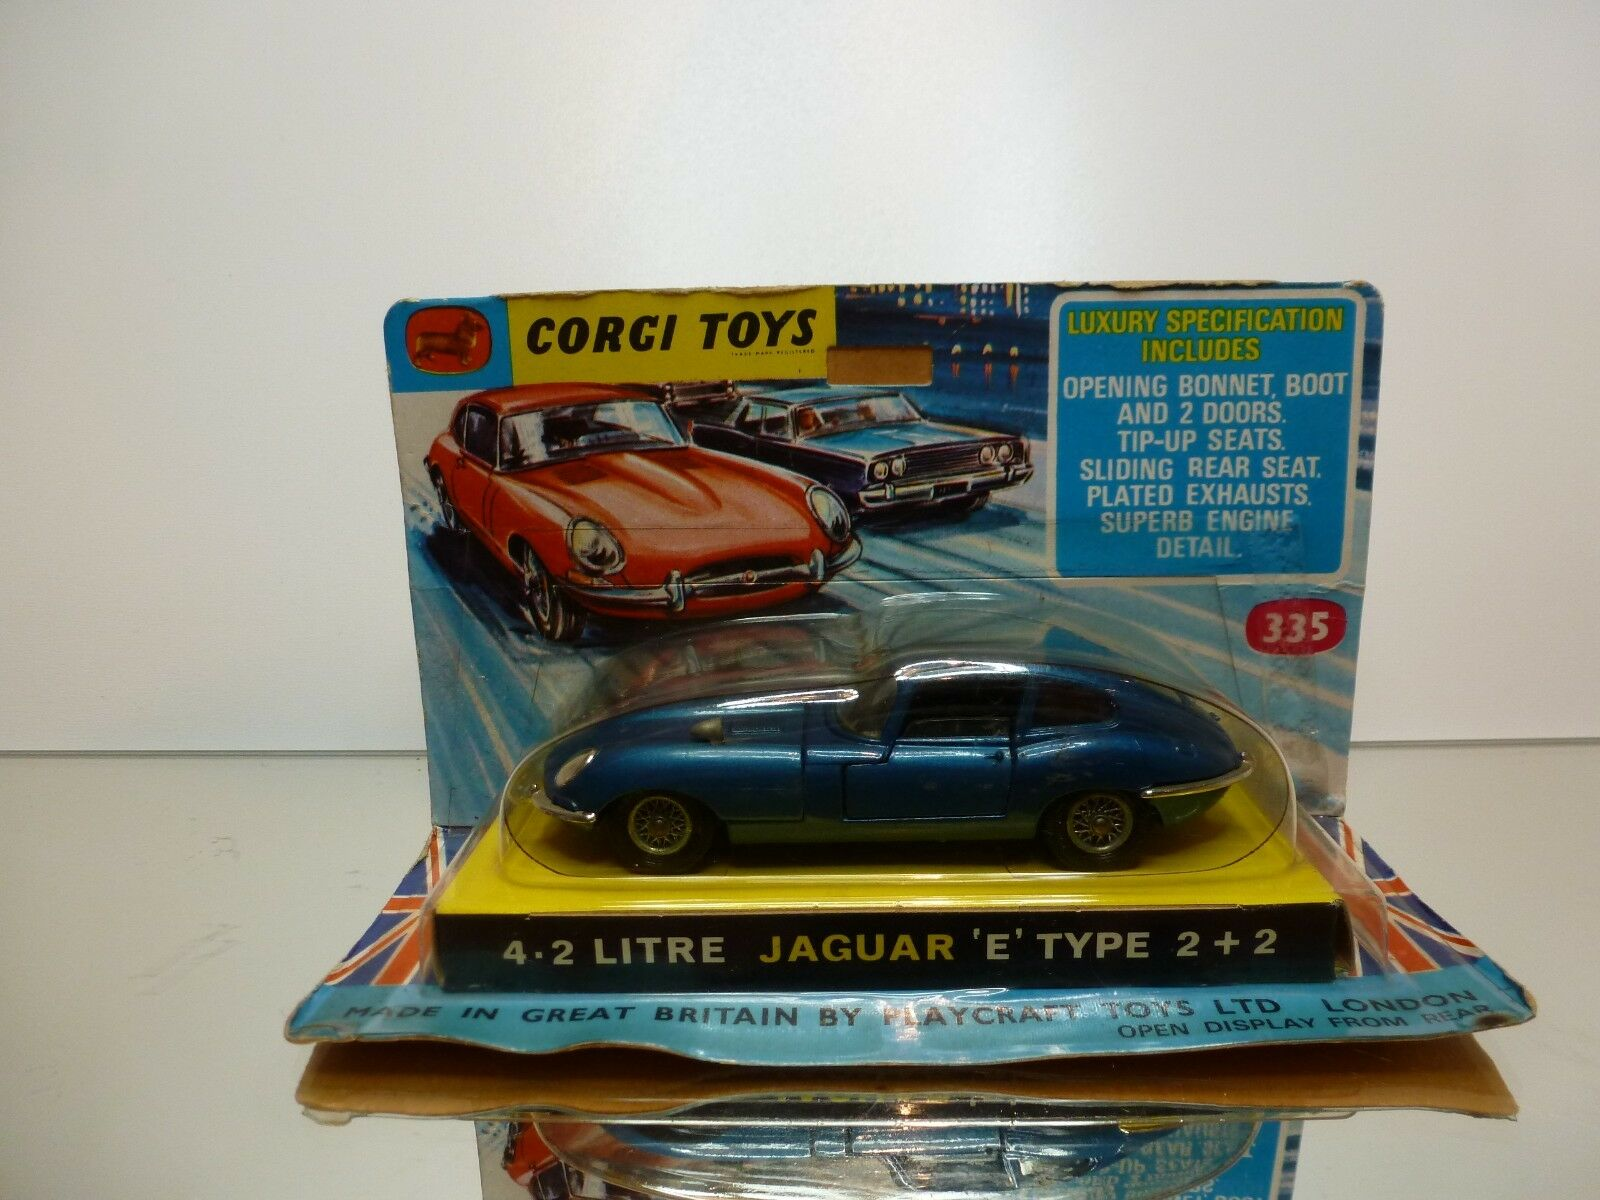 CORGI TOYS 335 4.2 LITRE JAGUAR E TYPE 2+2 - blueeE 1 43 - GOOD IN CARD BLISTER